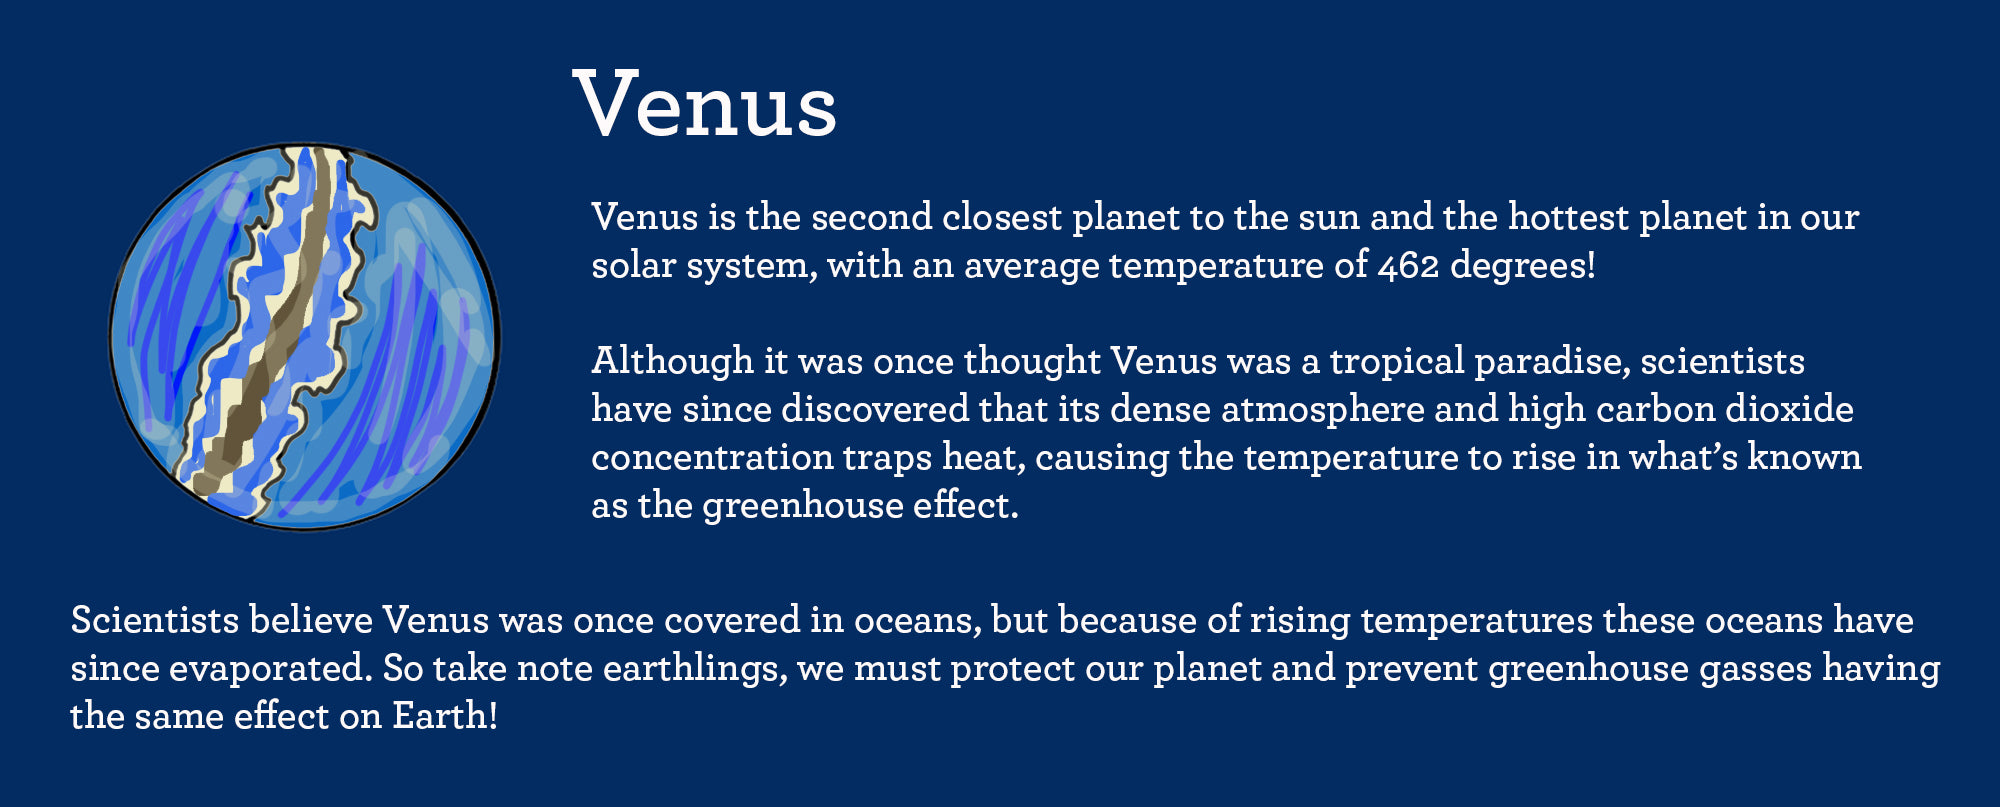 facts about planet venus